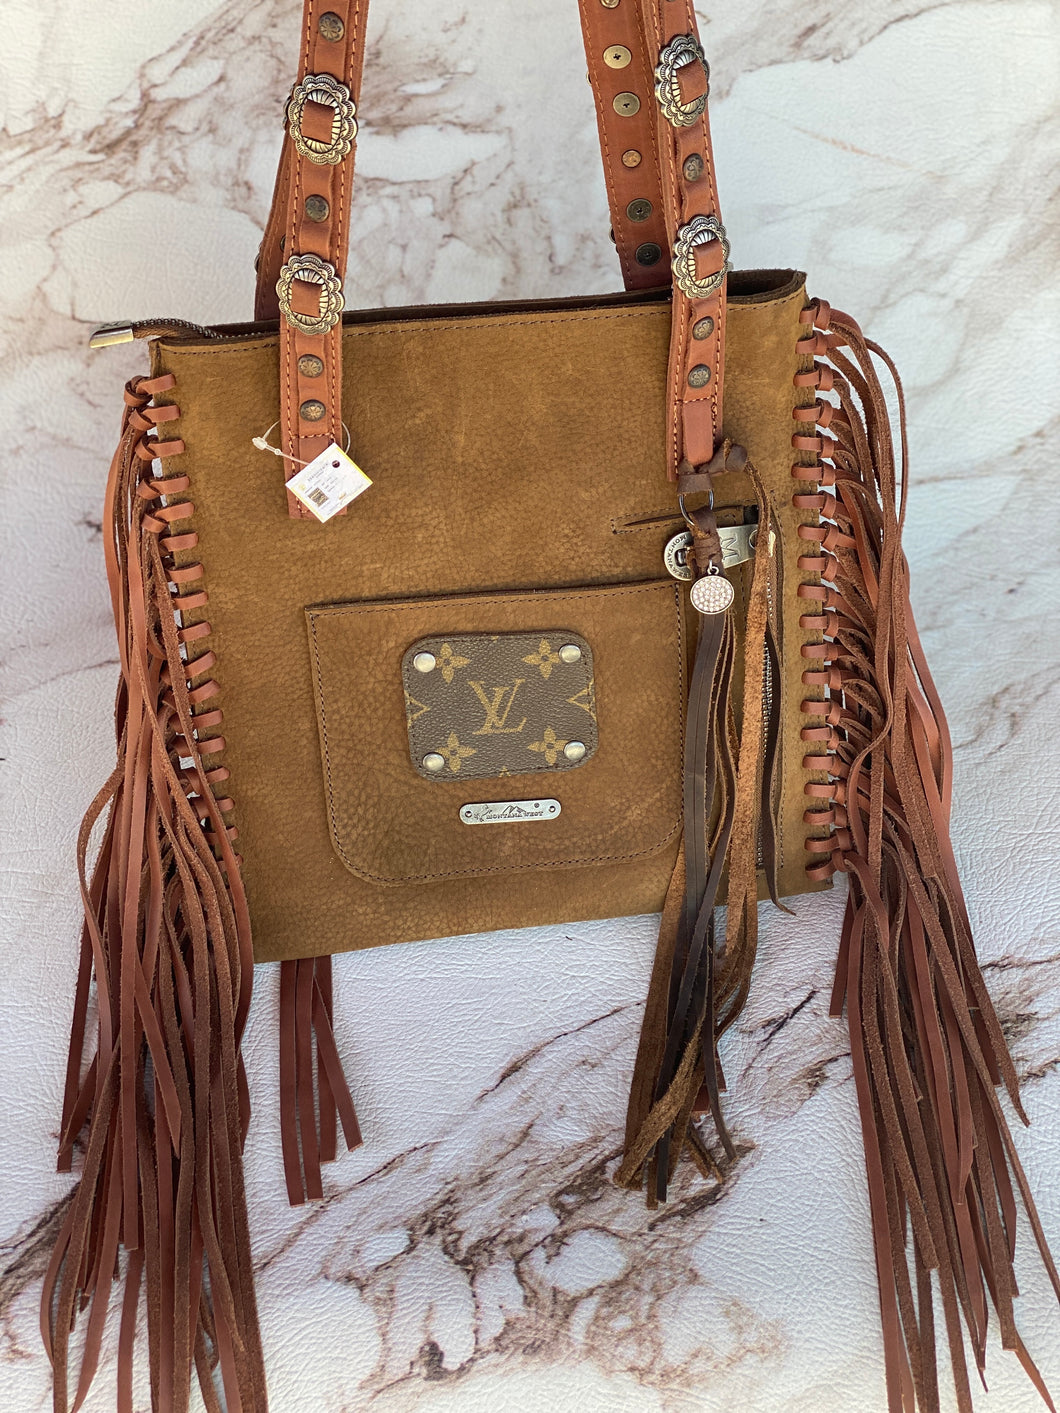 Western Fringe Purse with Repurposed LV Patch